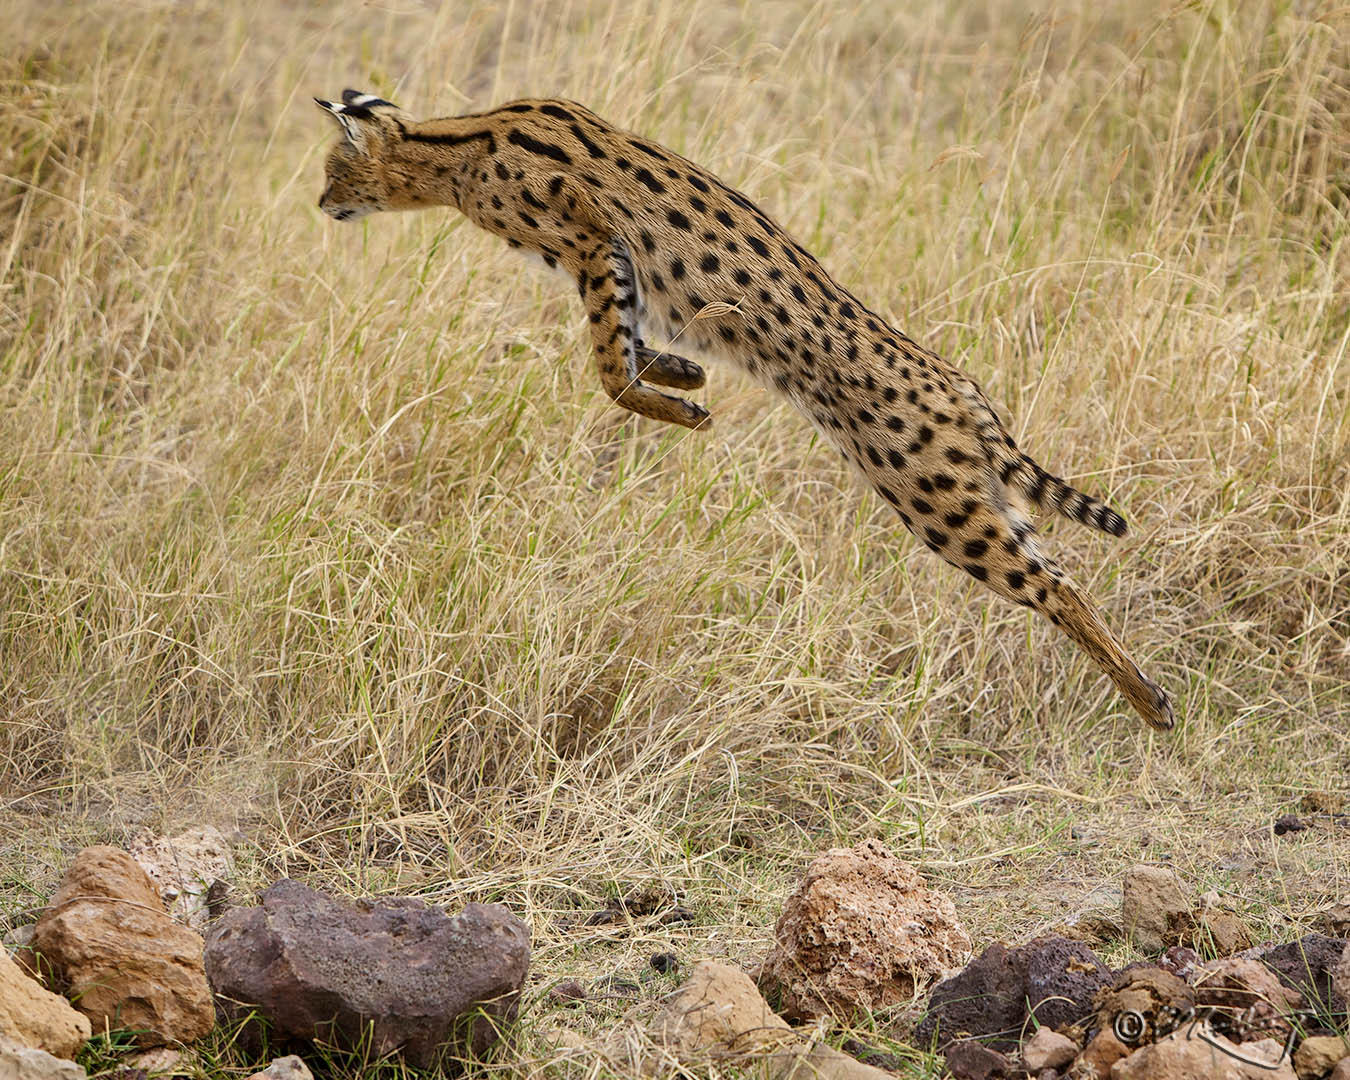 Serval_Cat_in_flight-c74